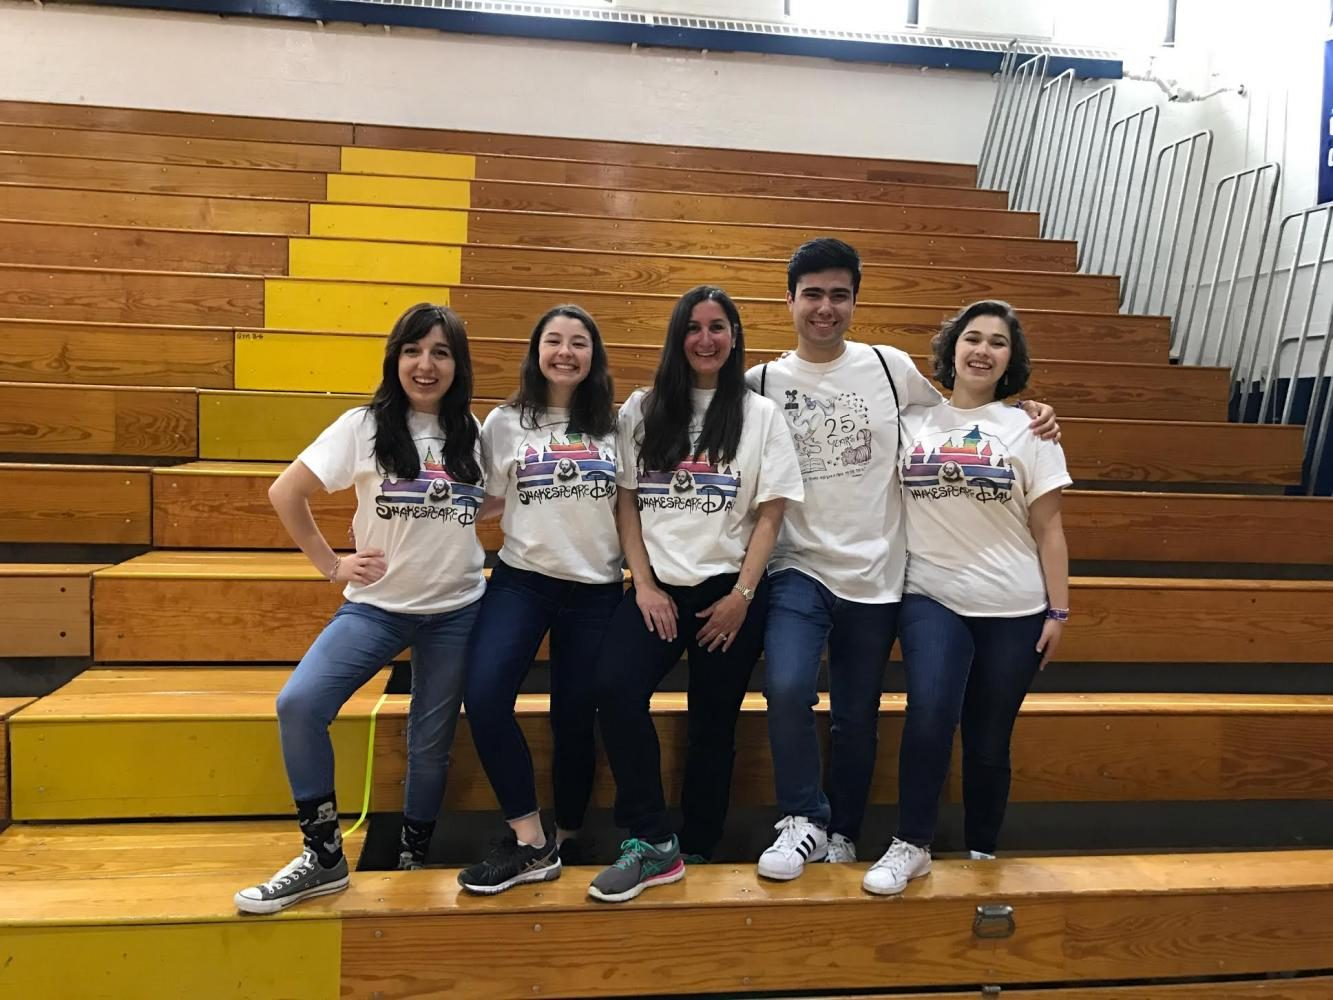 Senior+coordinators+Sarah+DeMarino%2C+Emilia+Charno%2C+Christian+Hill%2C+and+Anna+Cohen+have+helped+to+coordinate+the+past+two+Shakespeare+Days+with+Ms.+Valenti.